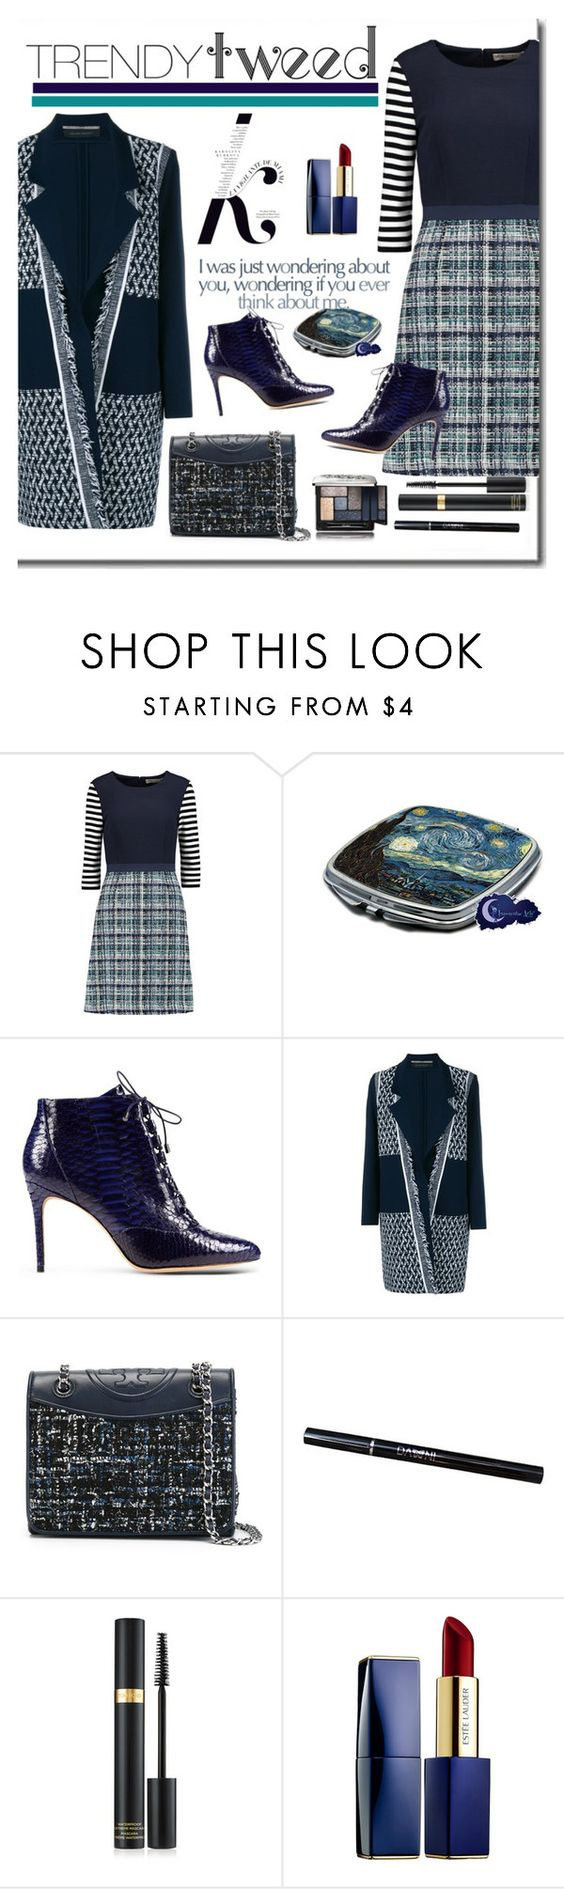 """Trendy Tweed"" by defineyourstyle ❤ liked on Polyvore featuring KAROLINA, Etro, Alexandre Birman, Roland Mouret, Tory Burch, Tom Ford, Estée Lauder, Guerlain and trendytweed"